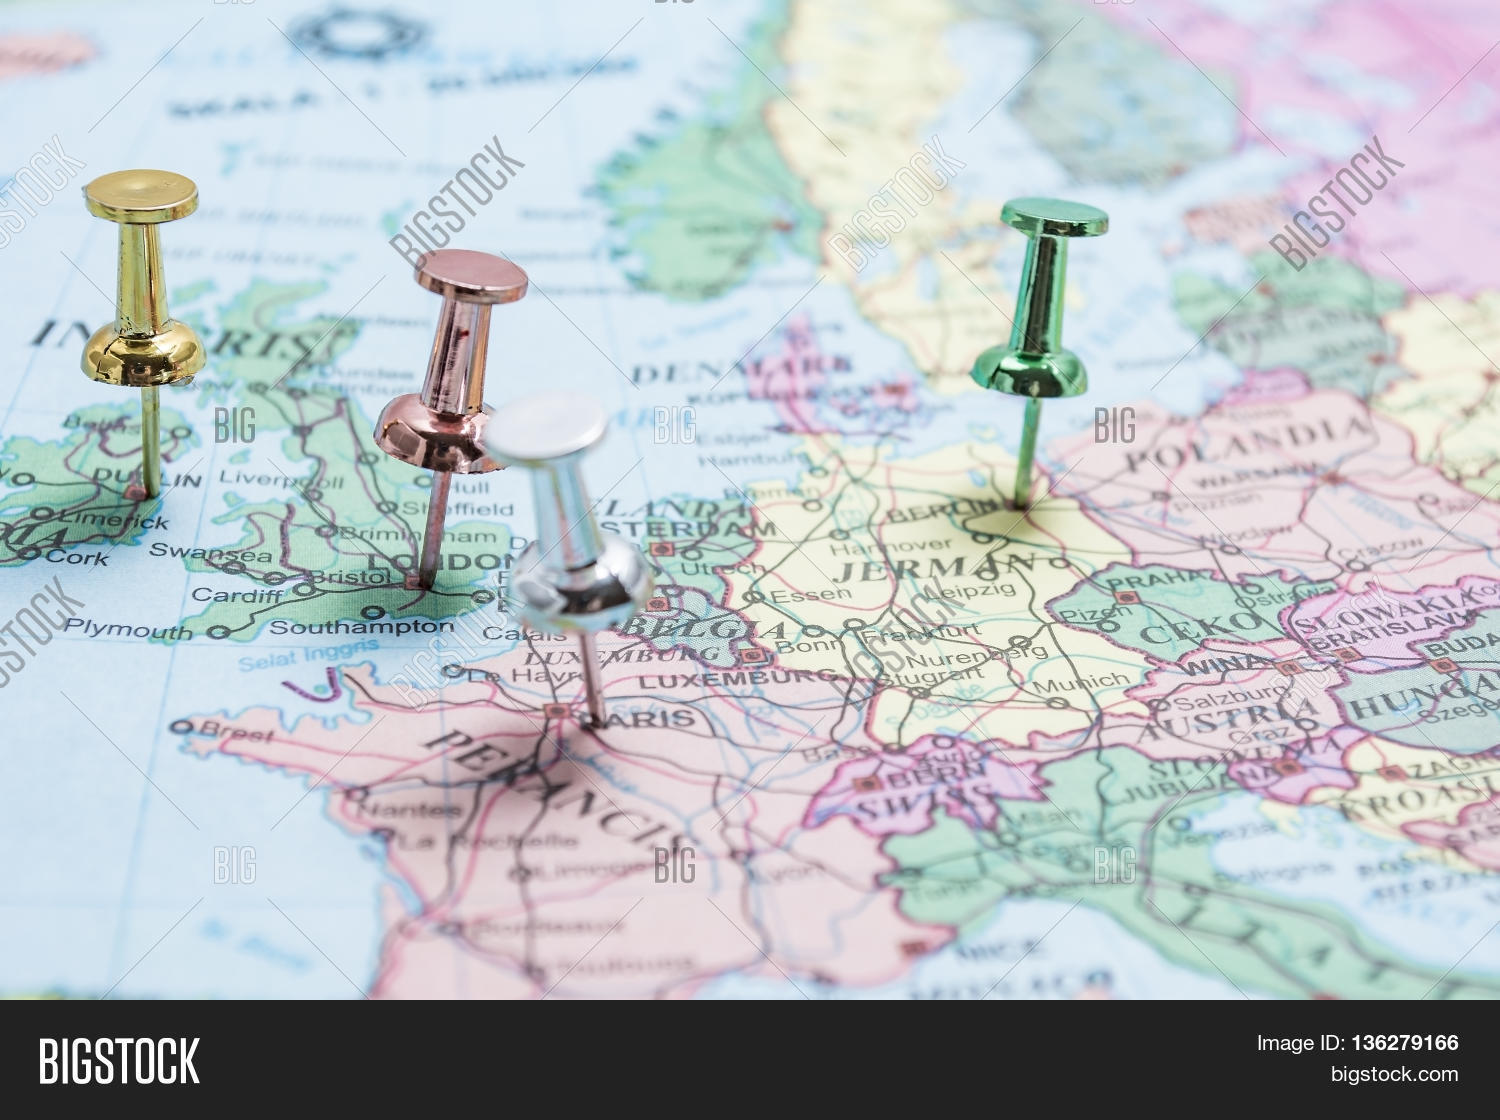 Map Europe Pins On Image   Photo  Free Trial    Bigstock Map of Europe with pins on the major cities of London Berlin Paris Dublin